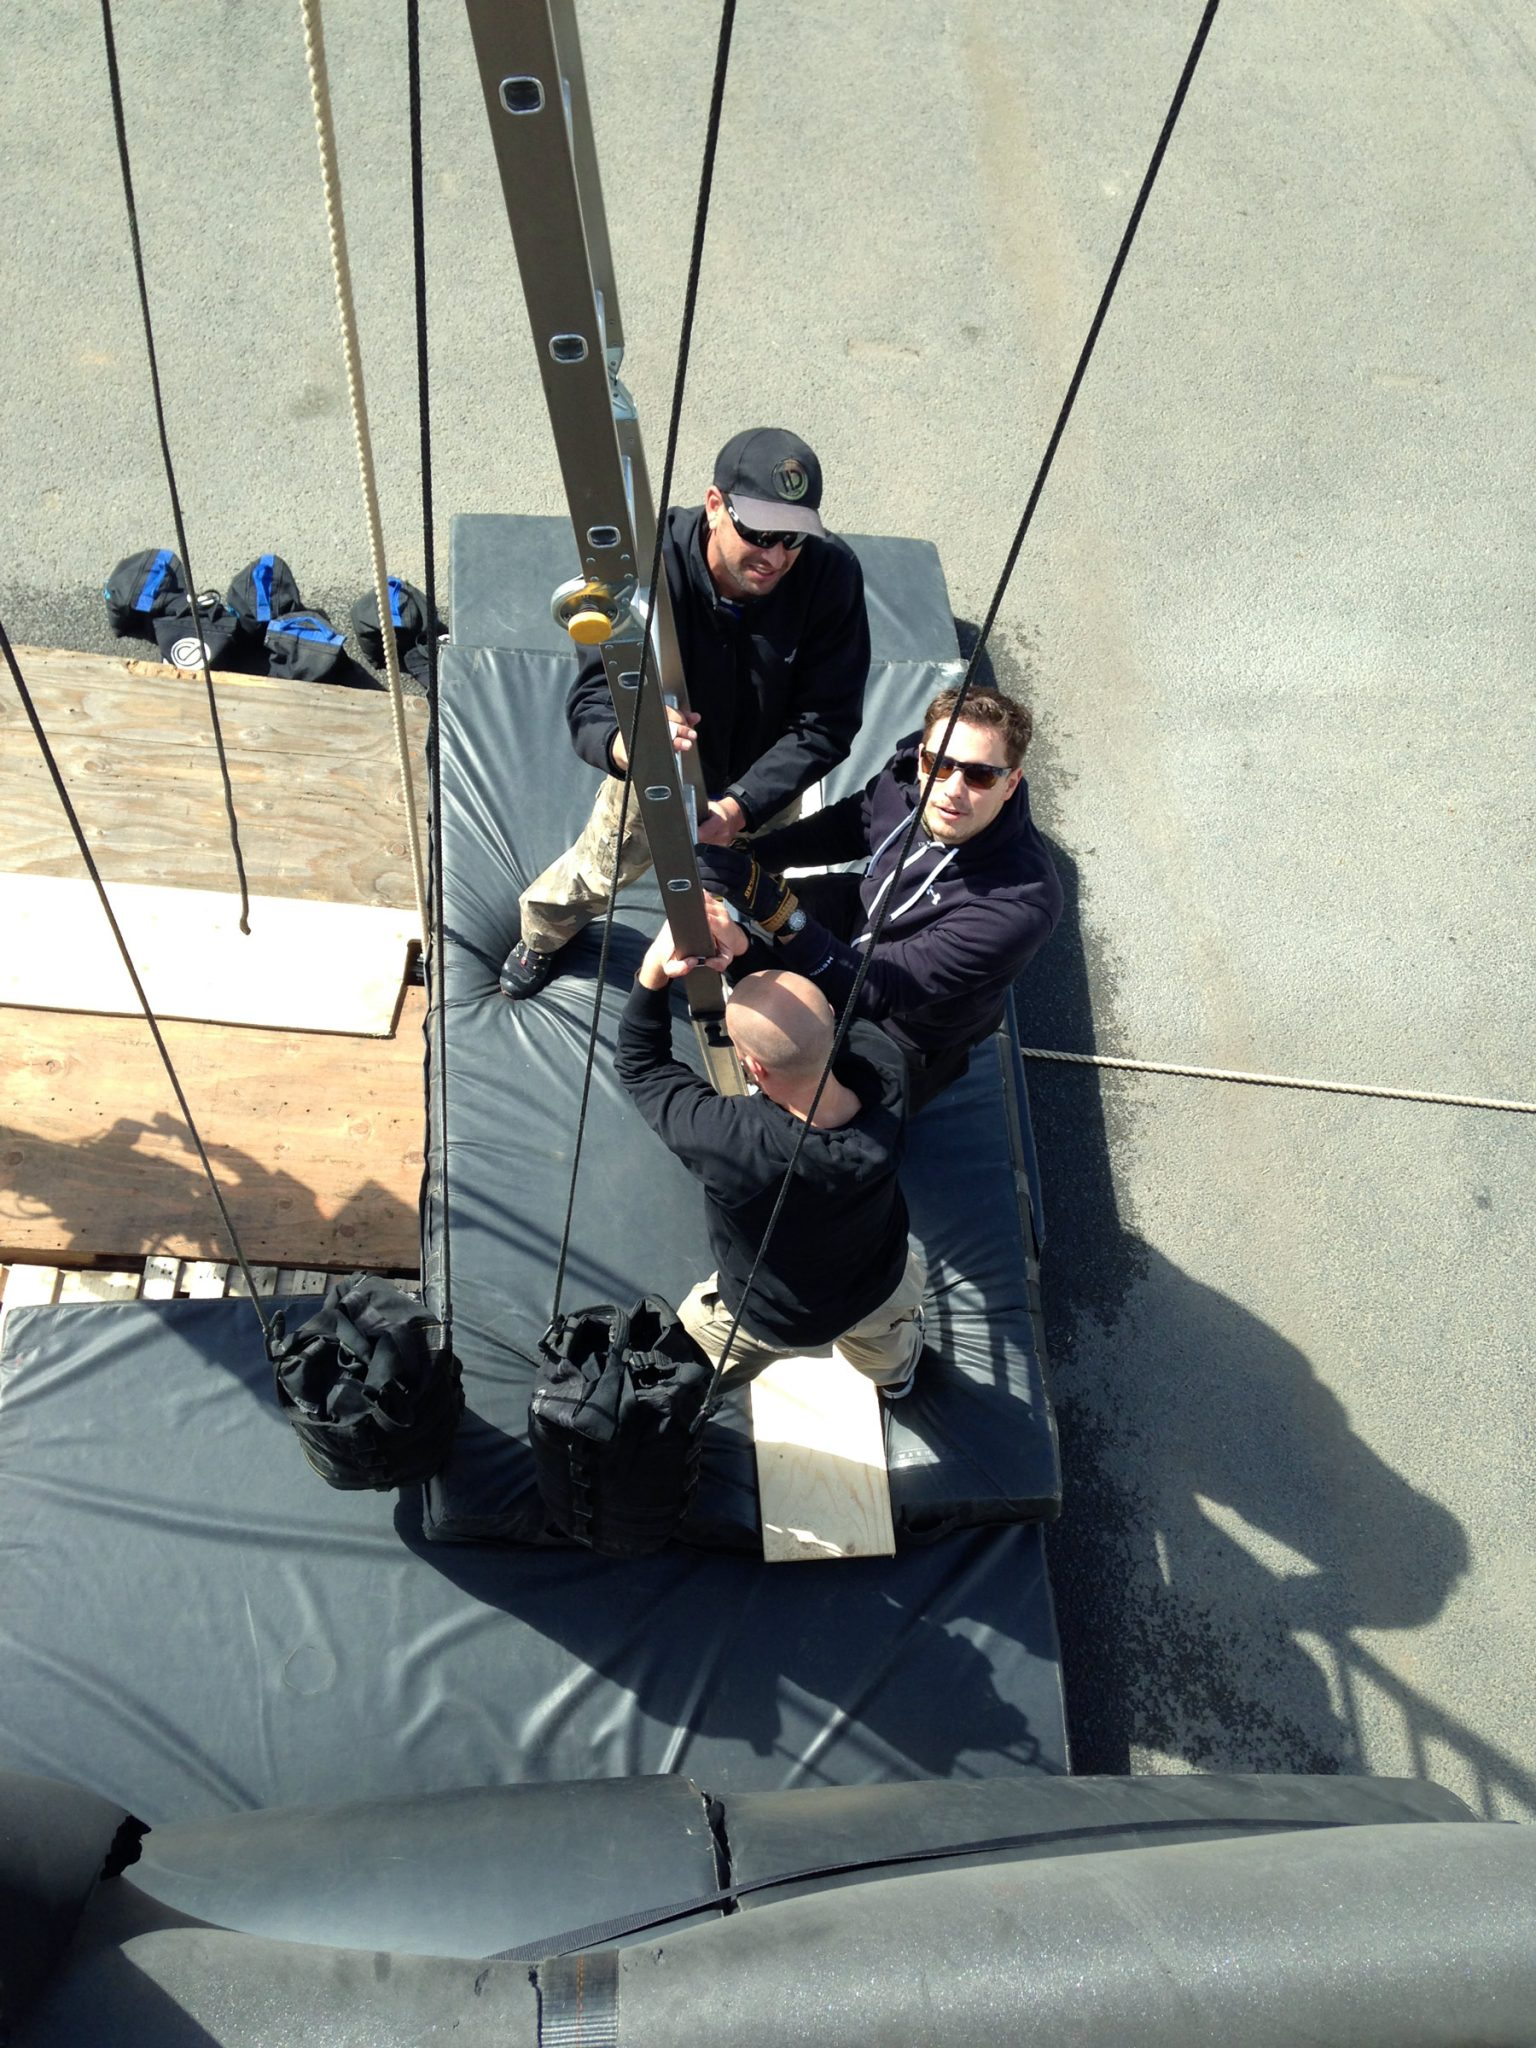 MG-Action, Martin Goeres, Stunt, Rigging, Safety, London, utility Stunt